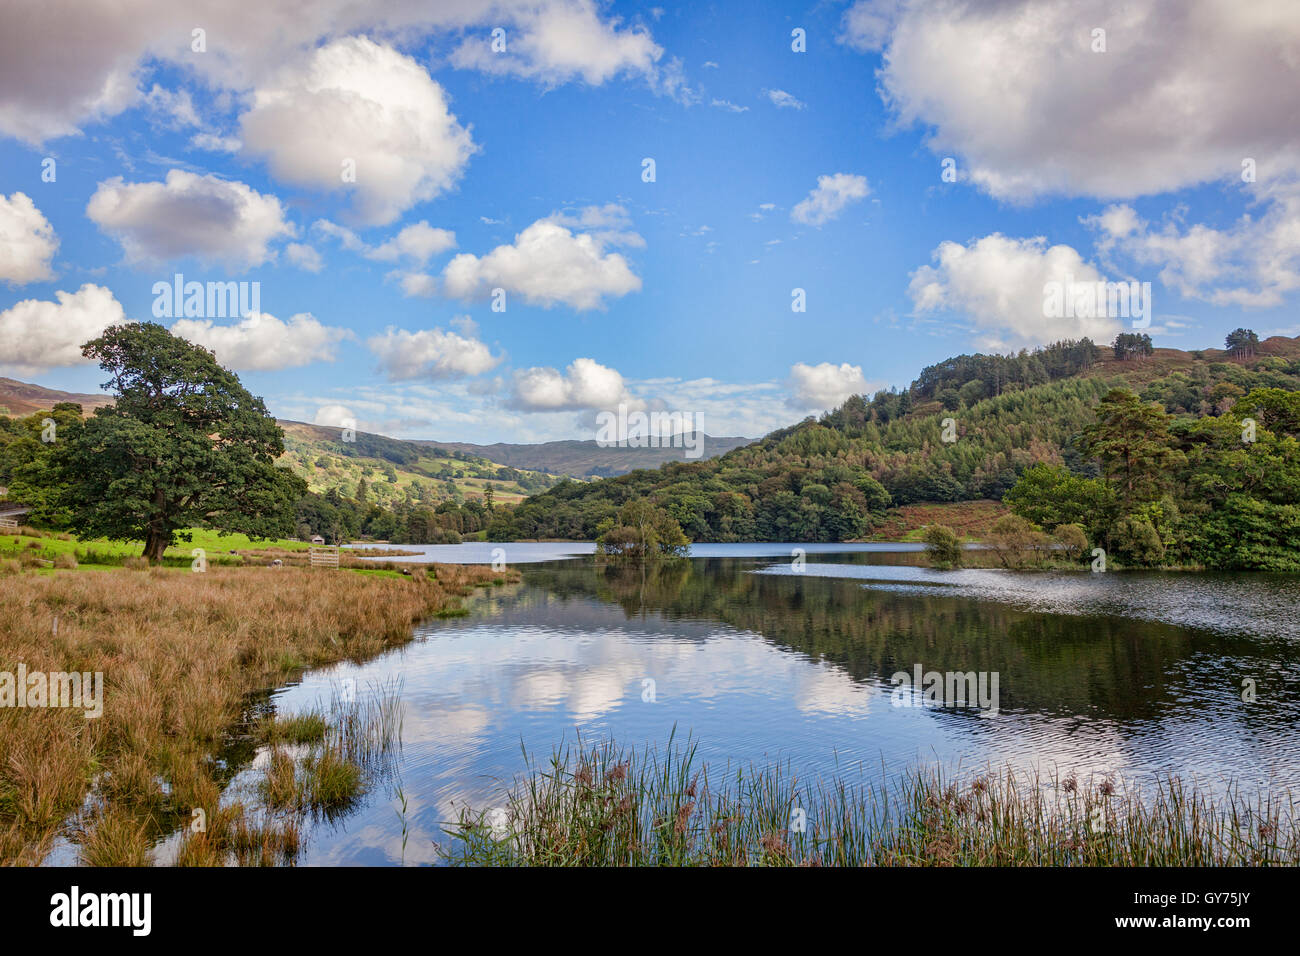 Rydal Water, Lake District National Park, Cumbria, Inglaterra, Reino Unido. Imagen De Stock